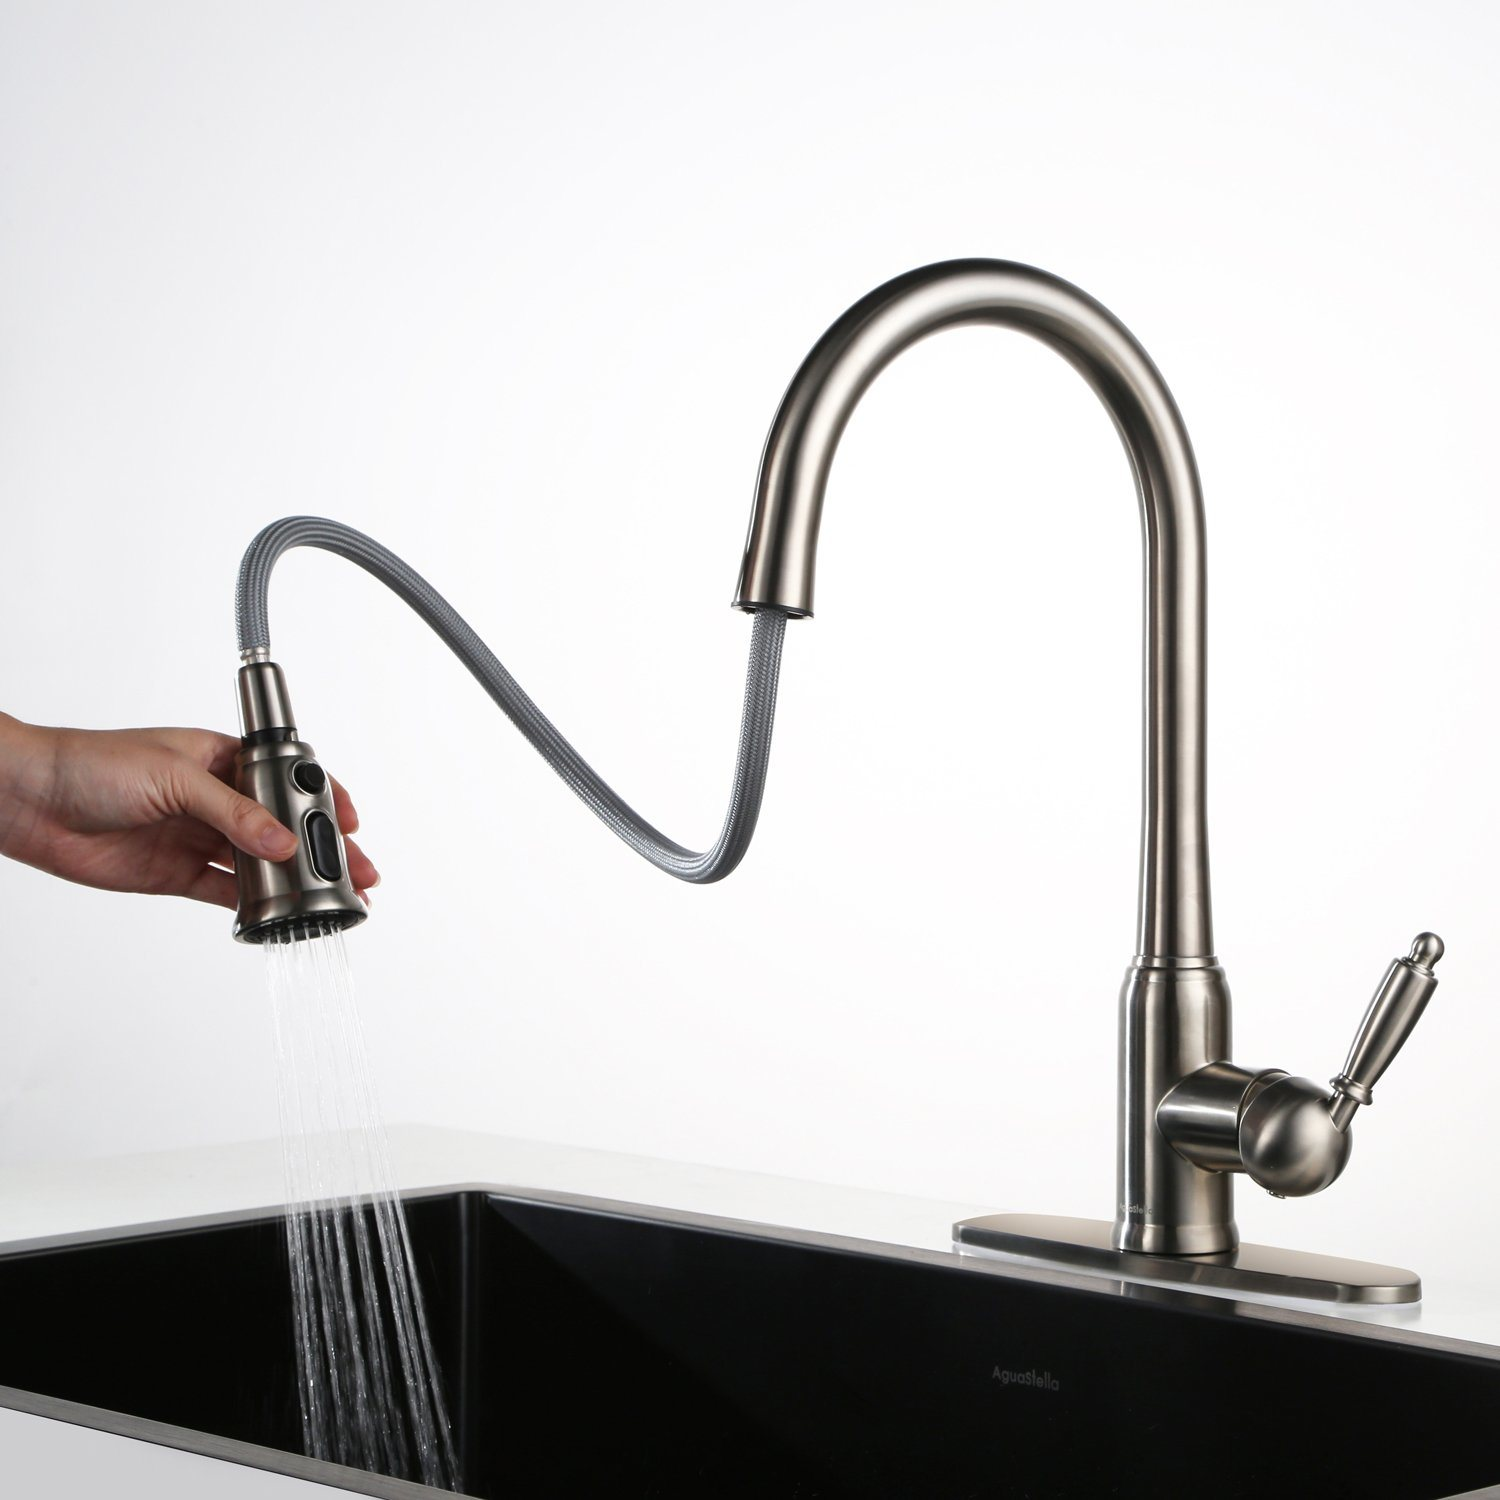 USA Flexible Hose Water Tap Brass Kitchen Faucet : kitchen faucets made in usa - hauntedcathouse.org